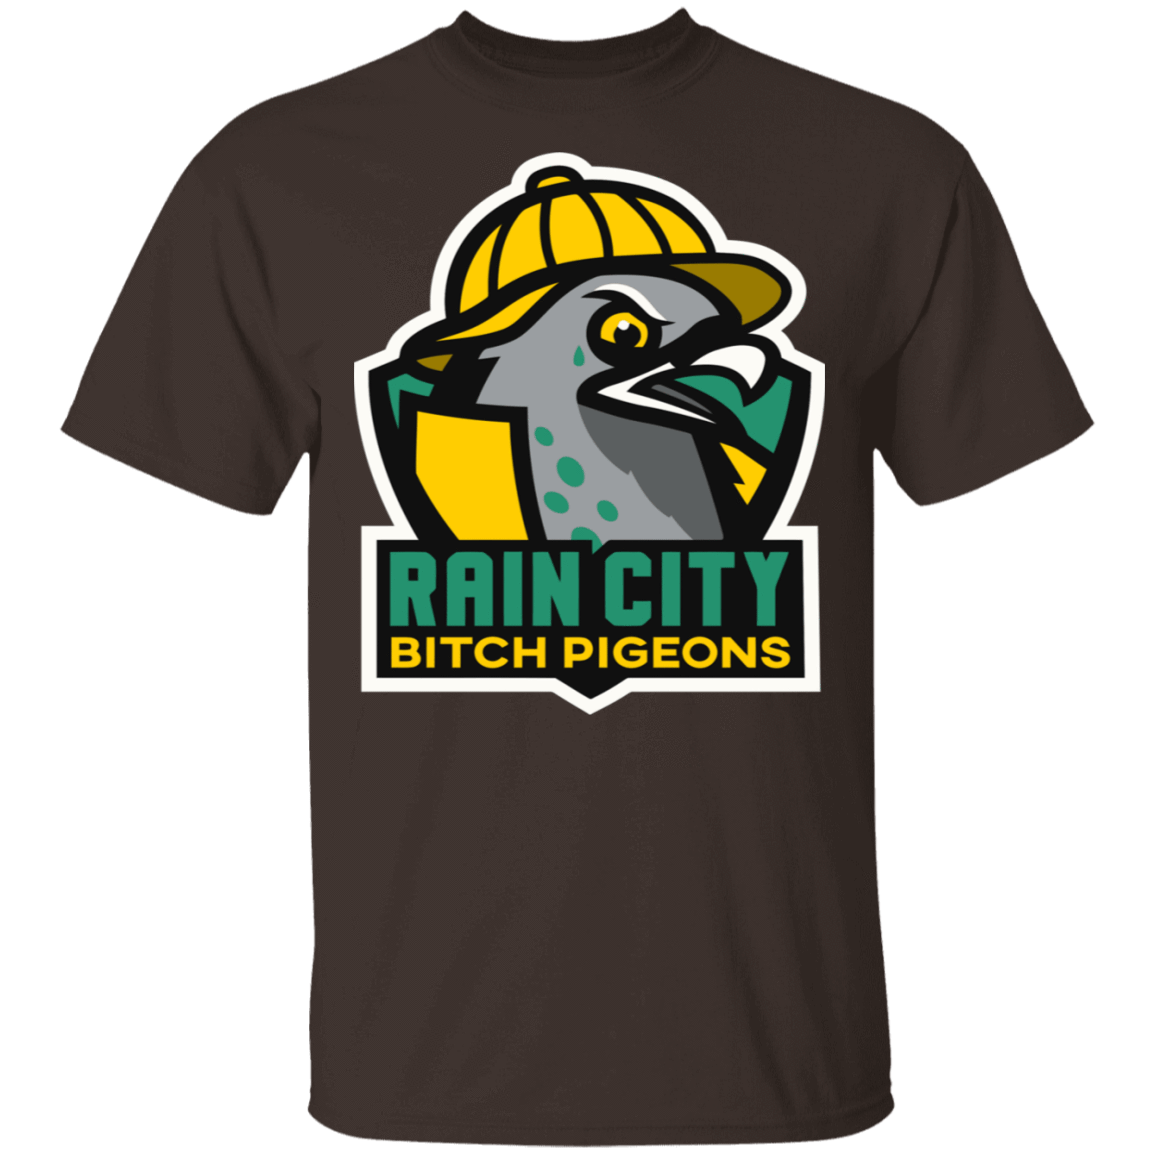 Rain City Bitch Pigeons T-Shirts, Hoodies, Tank 22-2283-79271397-12087 - Tee Ript